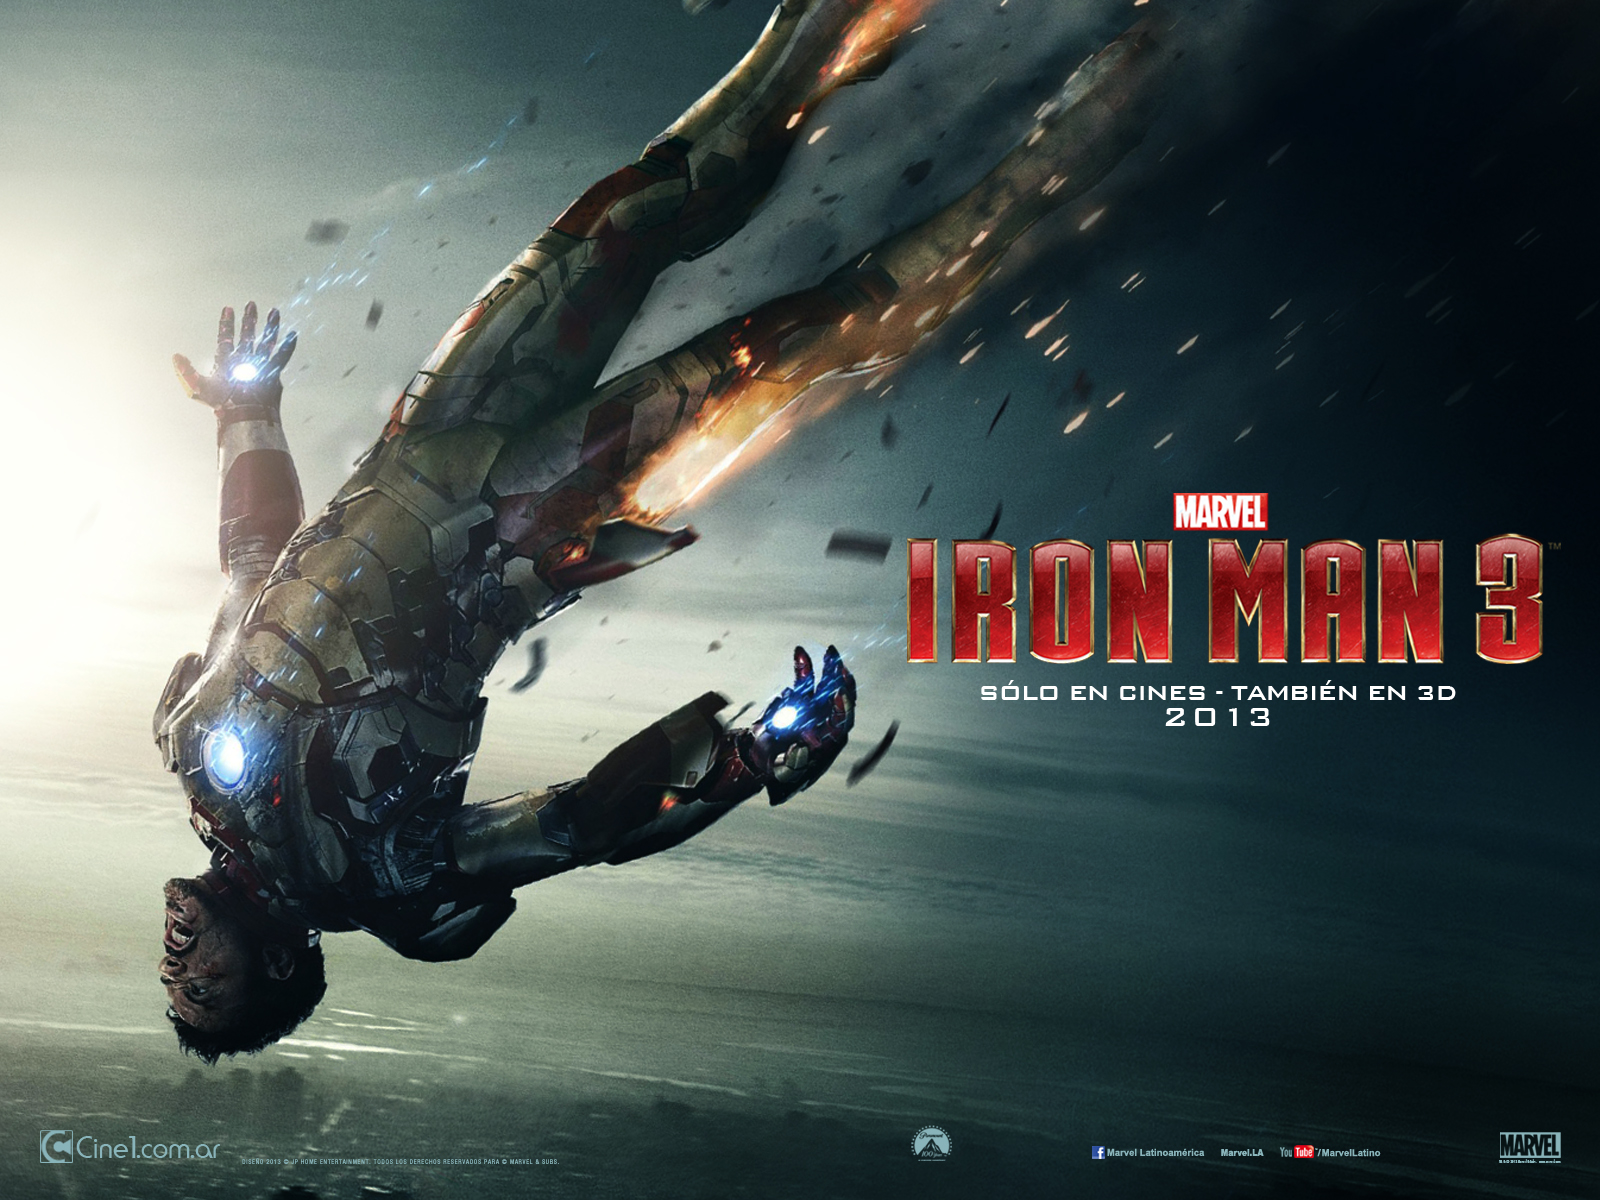 http://1.bp.blogspot.com/-Acx6As7Yw0U/UYTwlMsc1nI/AAAAAAAAjnE/1ALQHBZhePI/s1600/iron-man-3-poster-hd-wallpapers.jpg